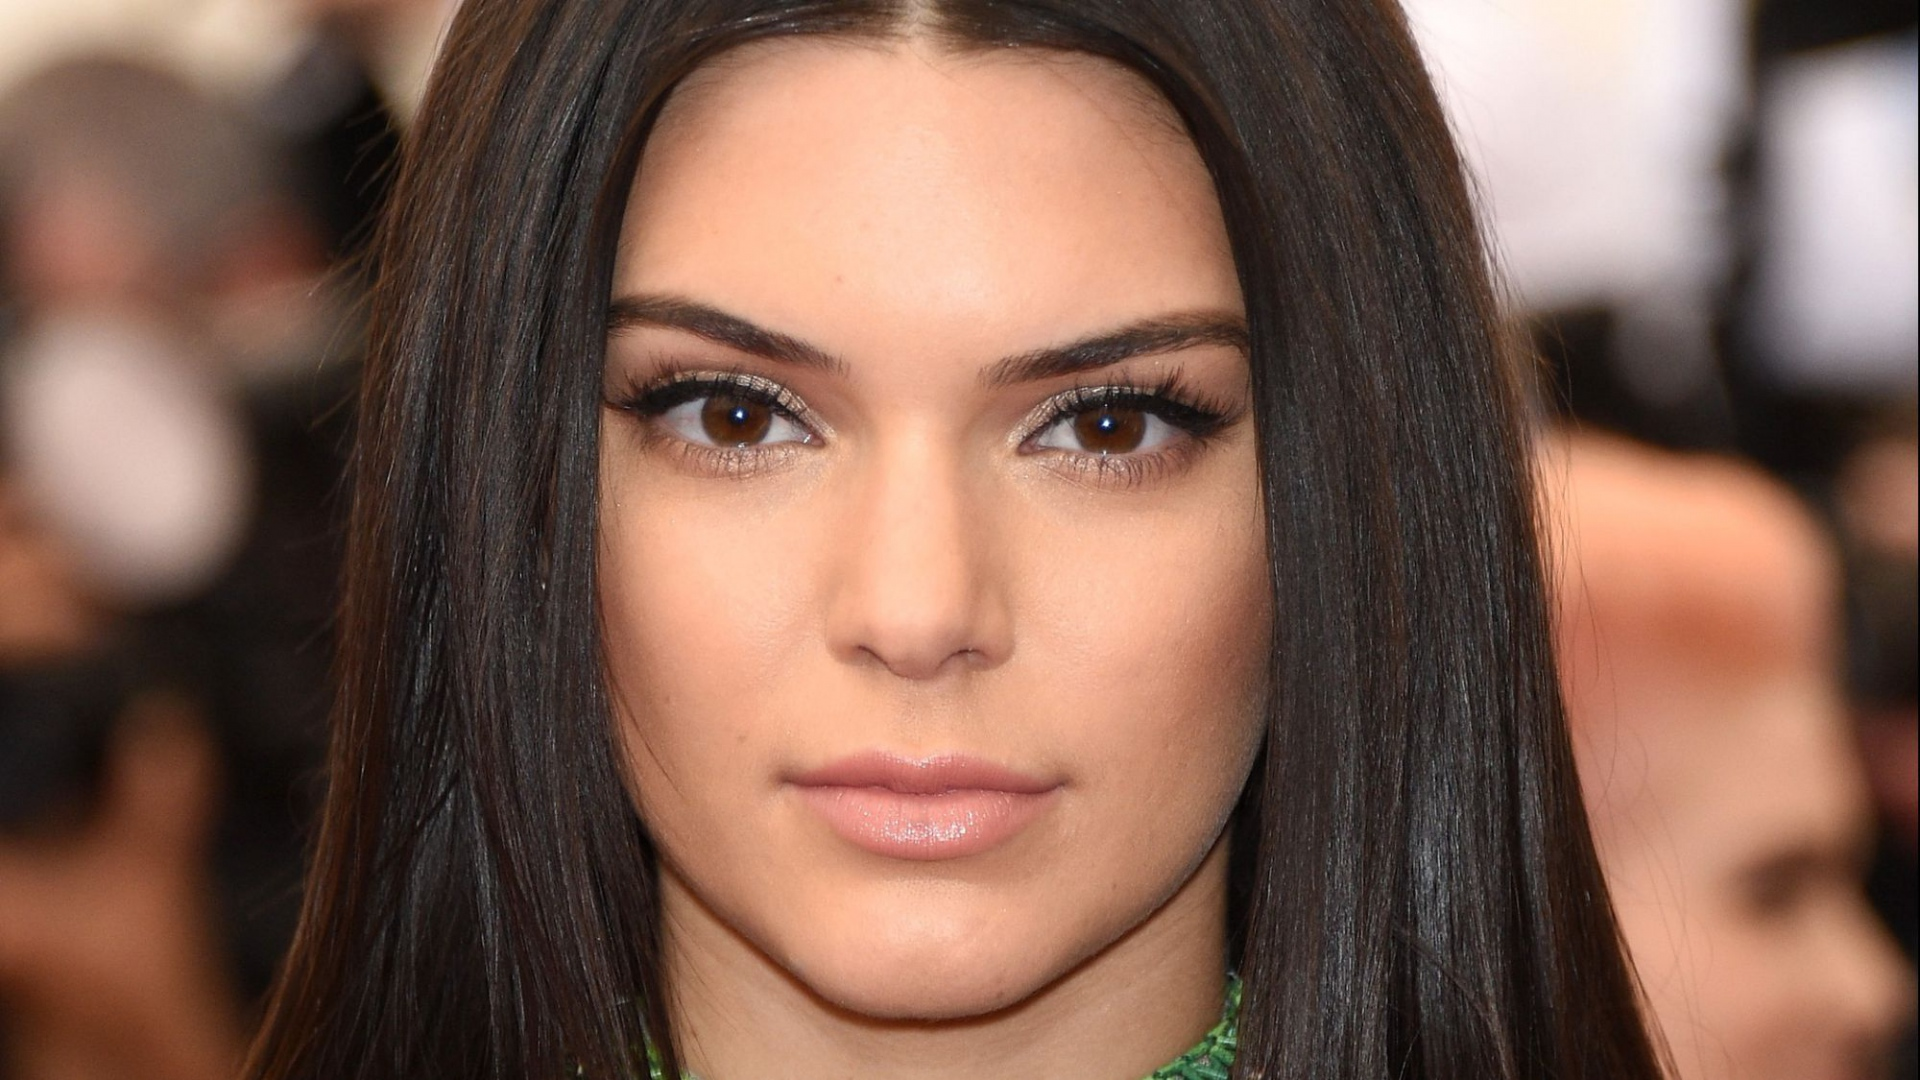 kendall-jenner-straight-hair-brown-eyes-attractive-1920×1080-wallpaper-wp3407738